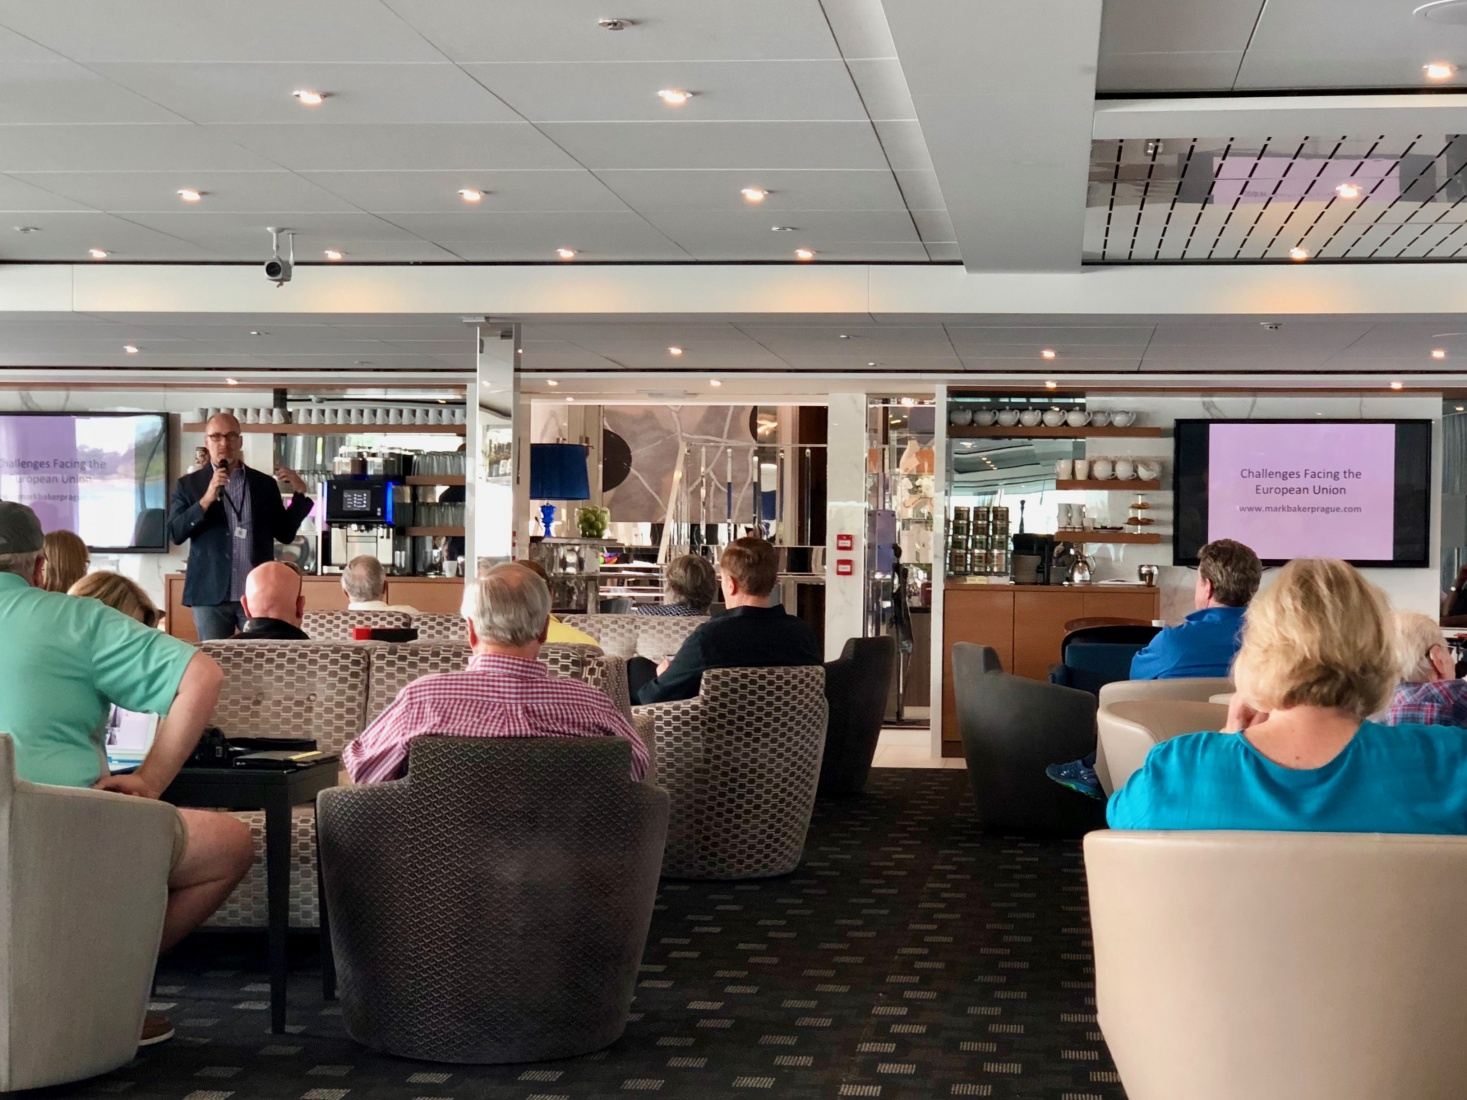 An audience of cruise passengers on the National Geographic ship listening to a lecture about the challenges facing the european union.